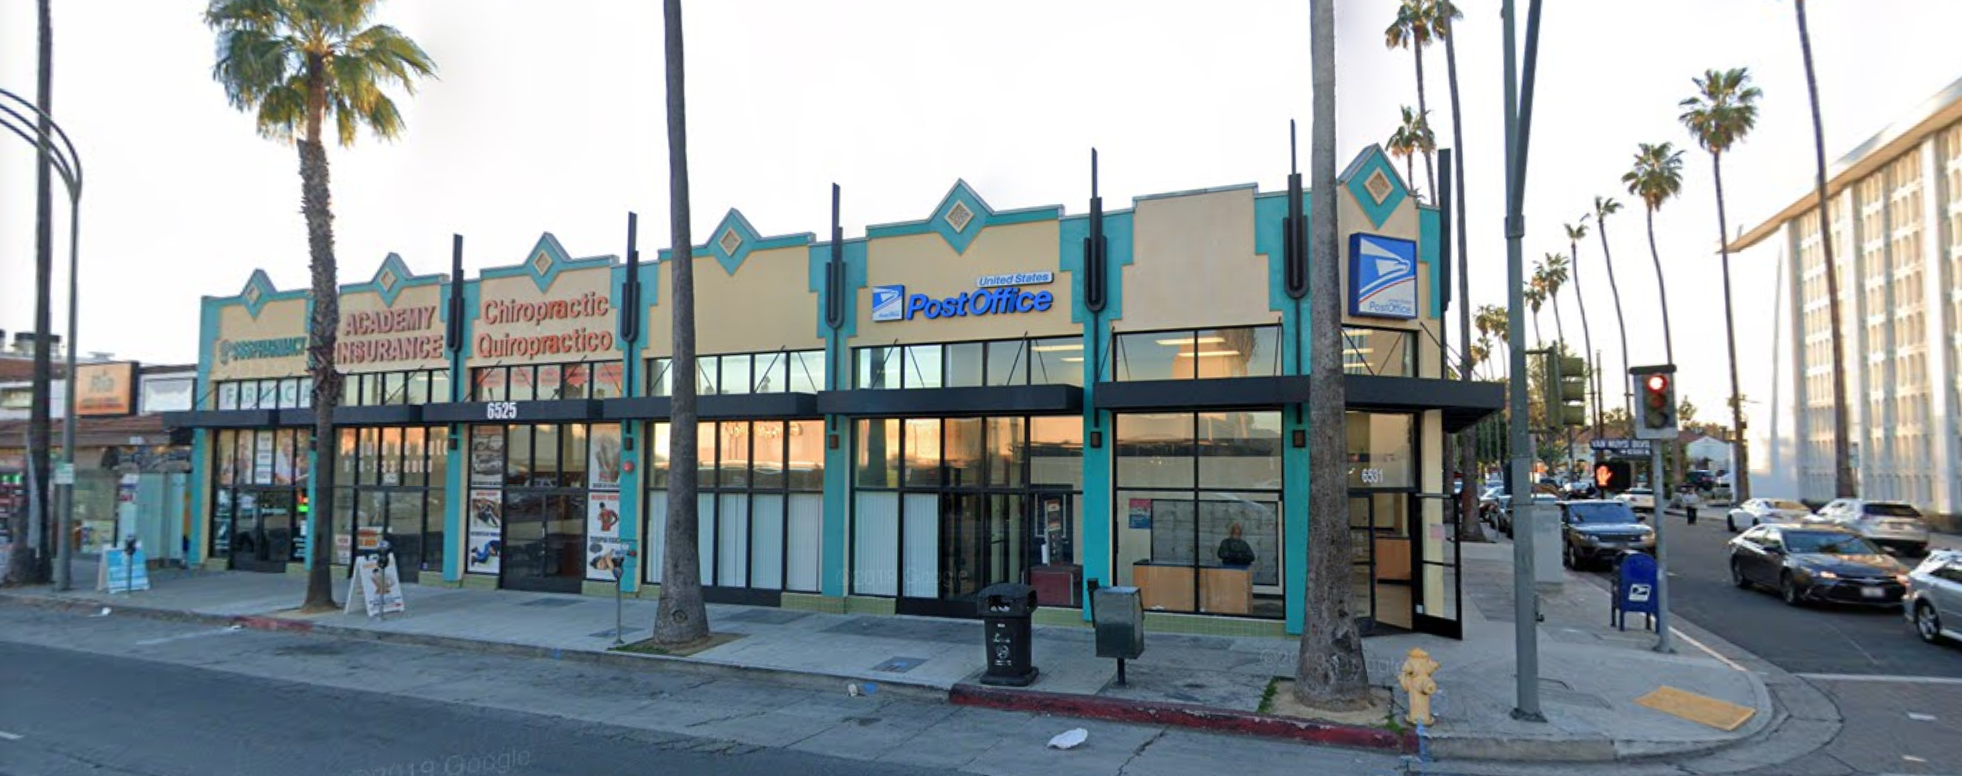 The U.S. Post Office in Van Nuys, California according to Google maps.